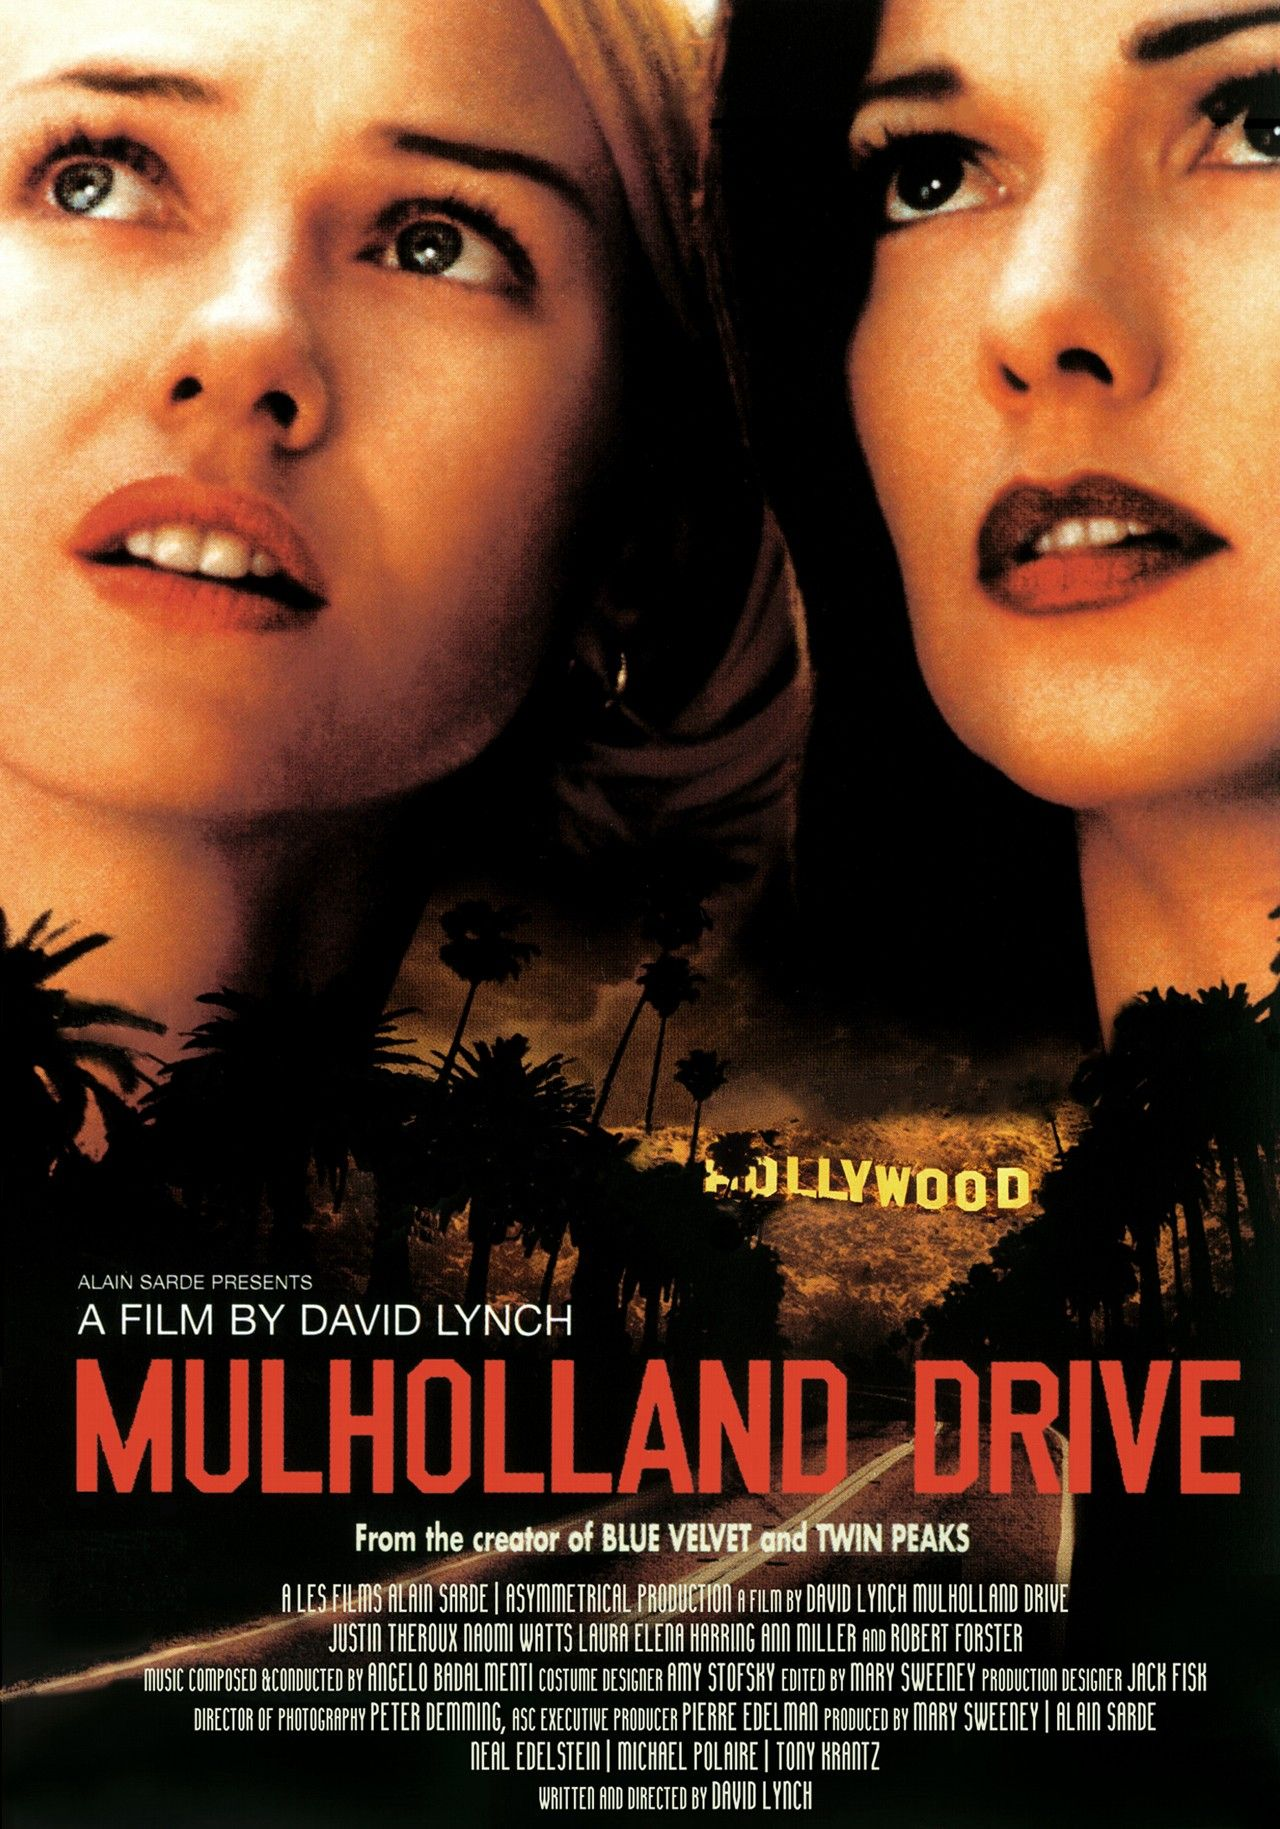 b295d540c Mullholand Drive movie poster - Google Search | movies and ...